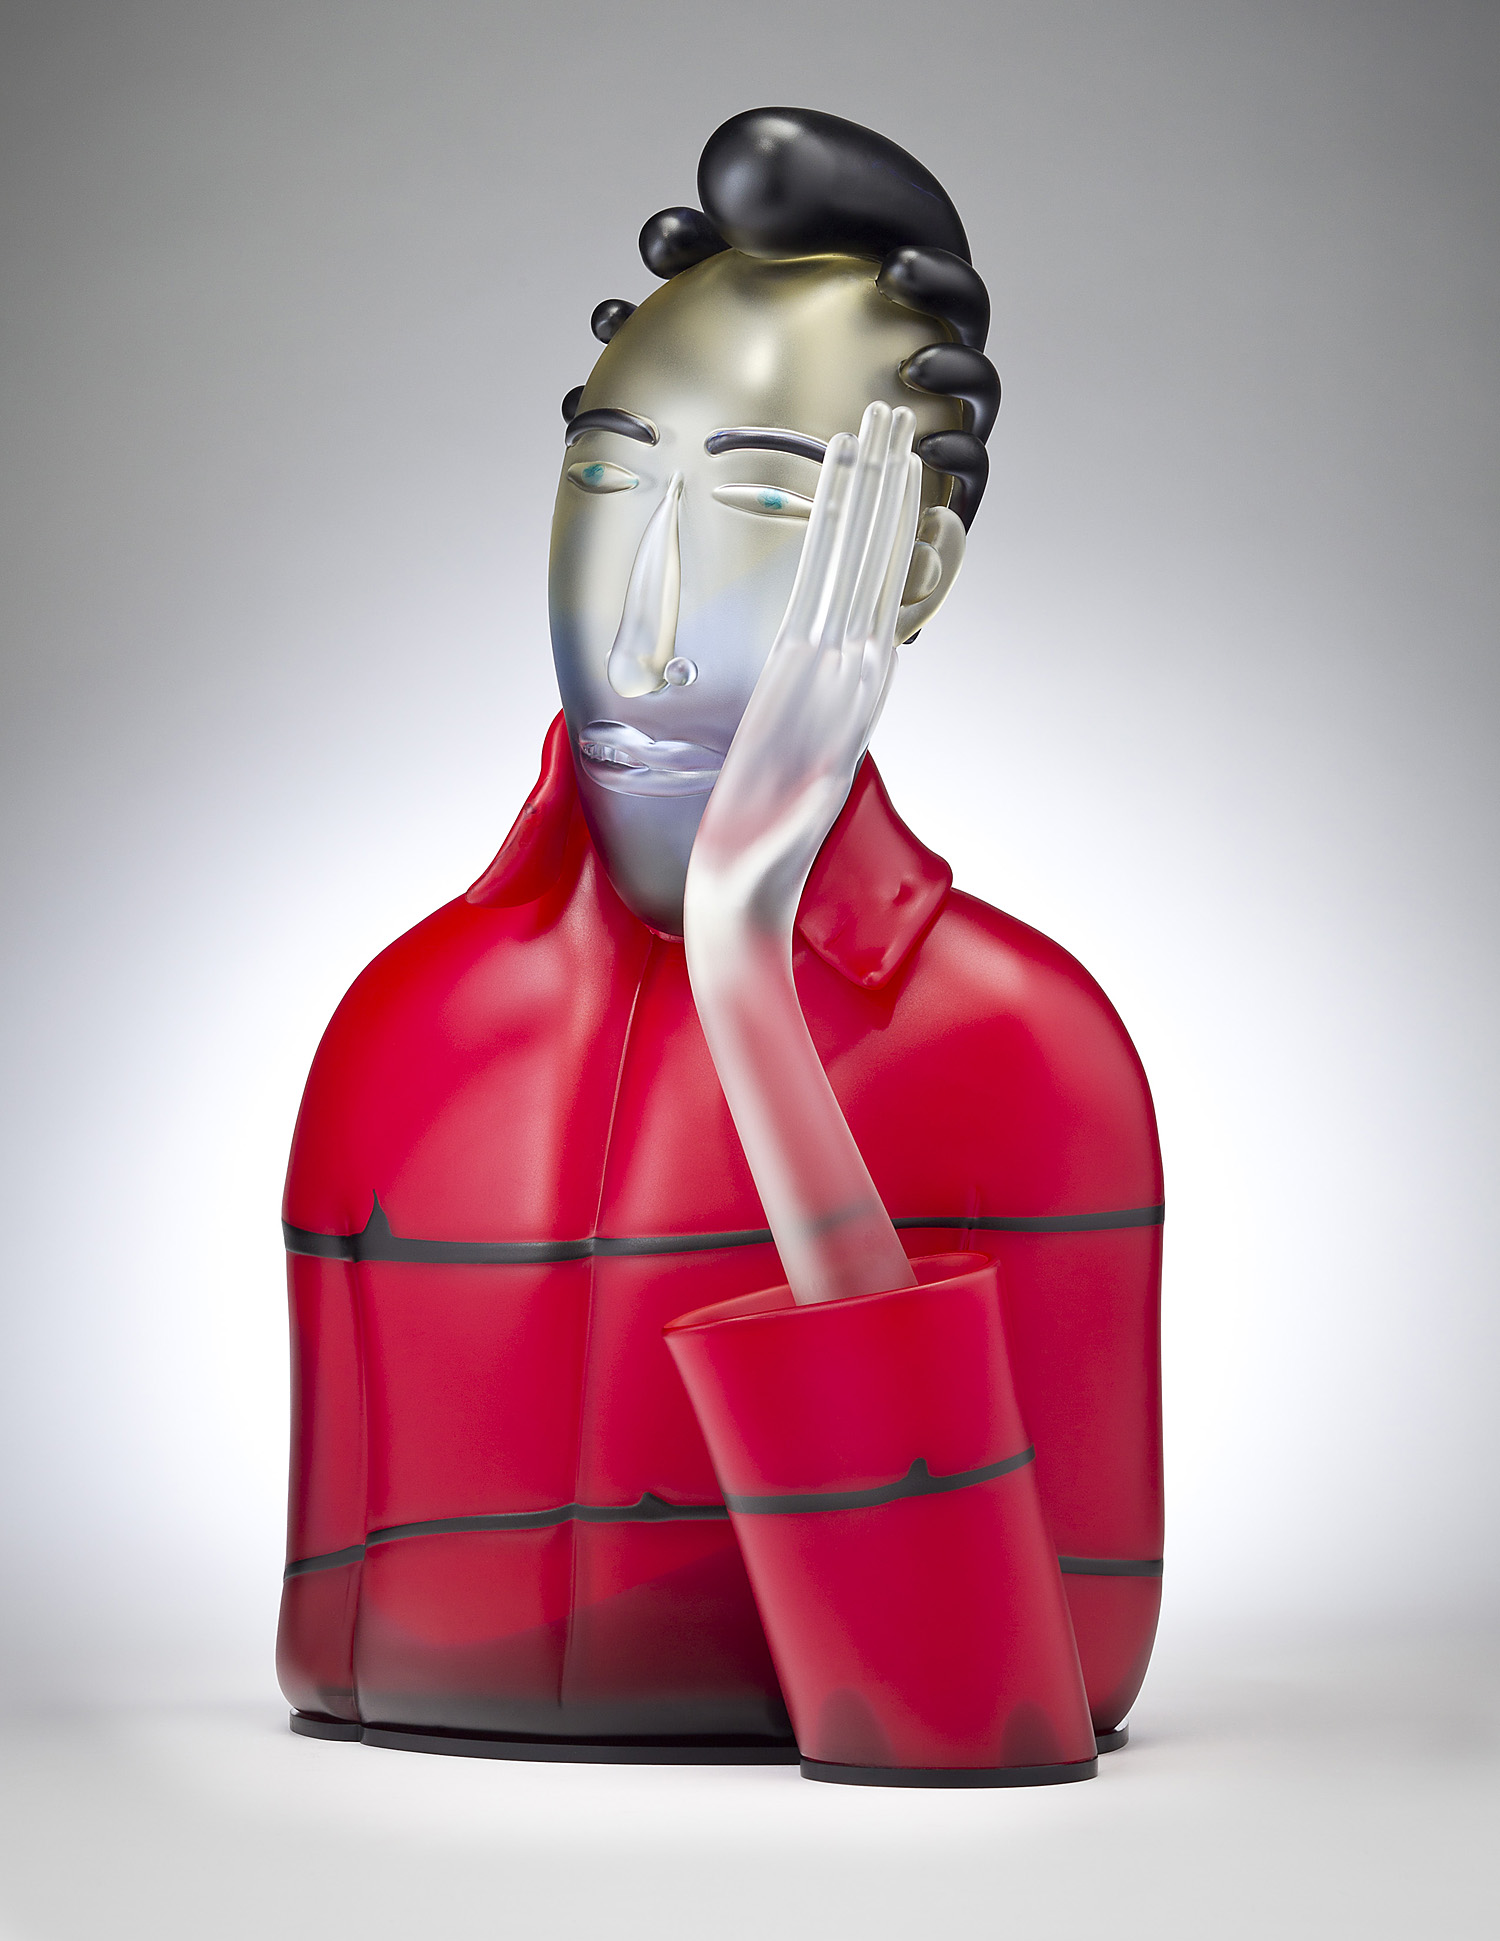 Dubious   2011. Blown glass, aluminum. 23½ x 14¼ x 7¼""